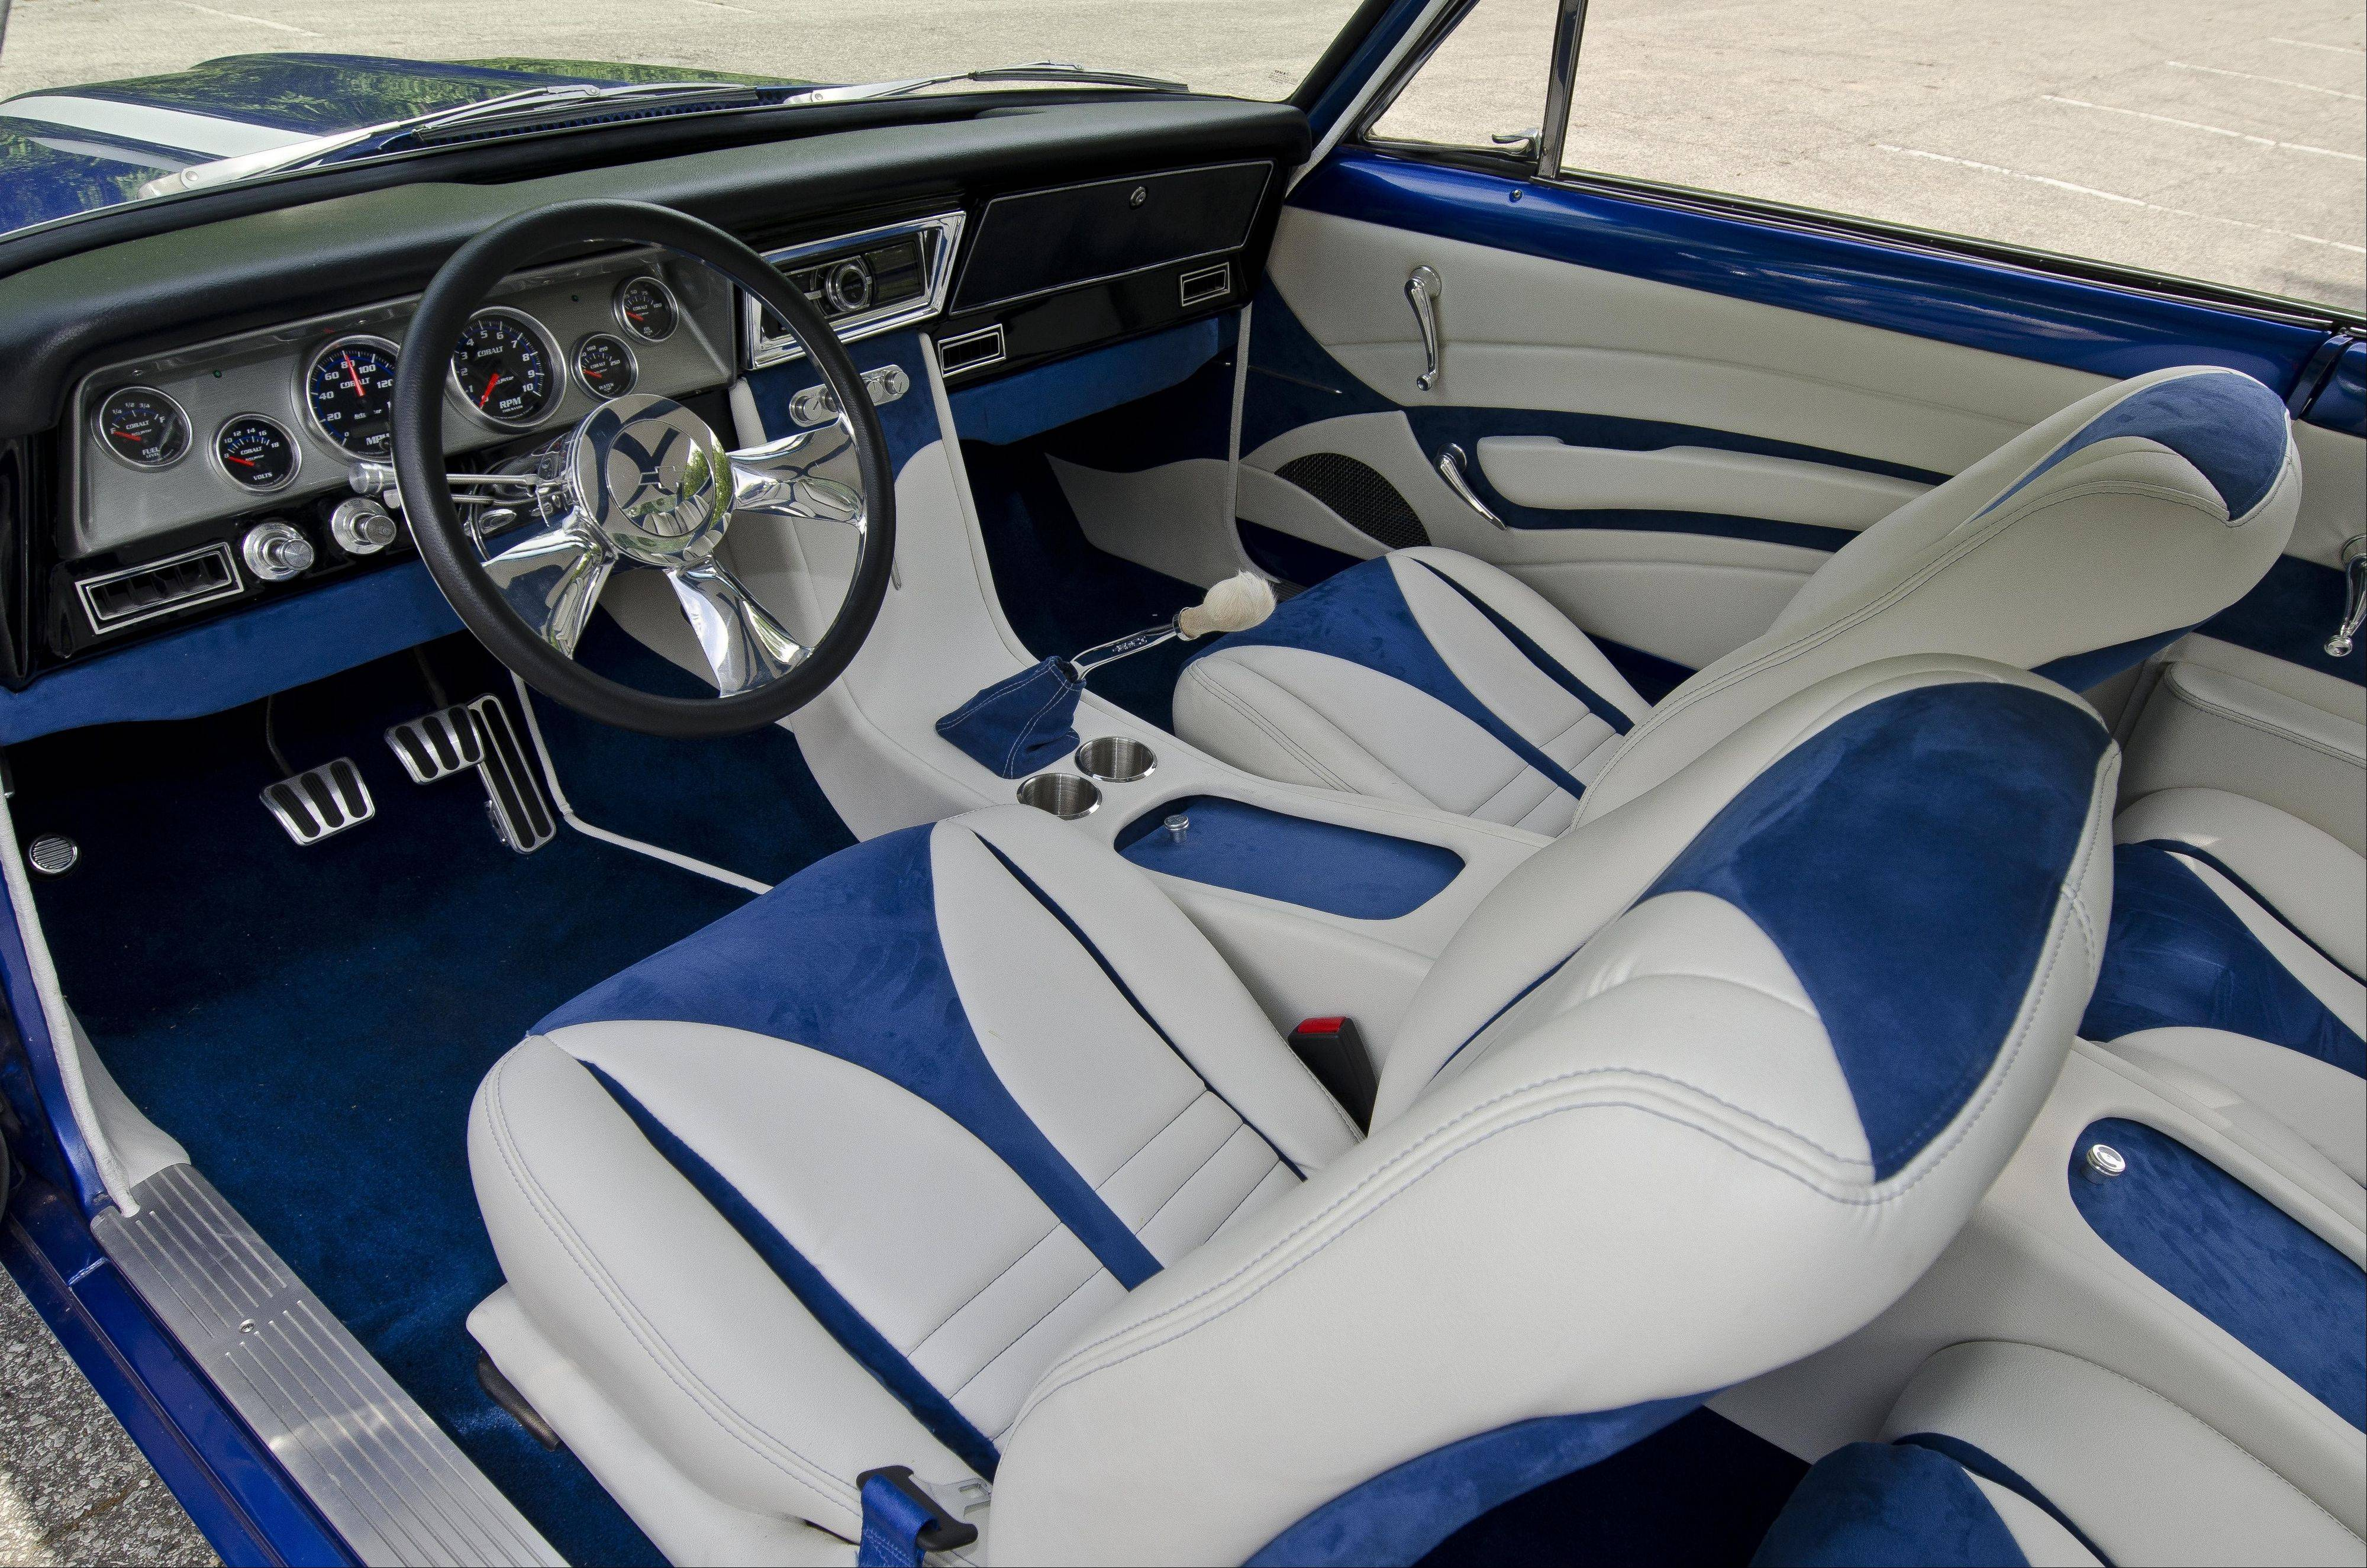 The Nova's cobalt blue and white interior glows at night when illuminated by LED lights around the headliner.